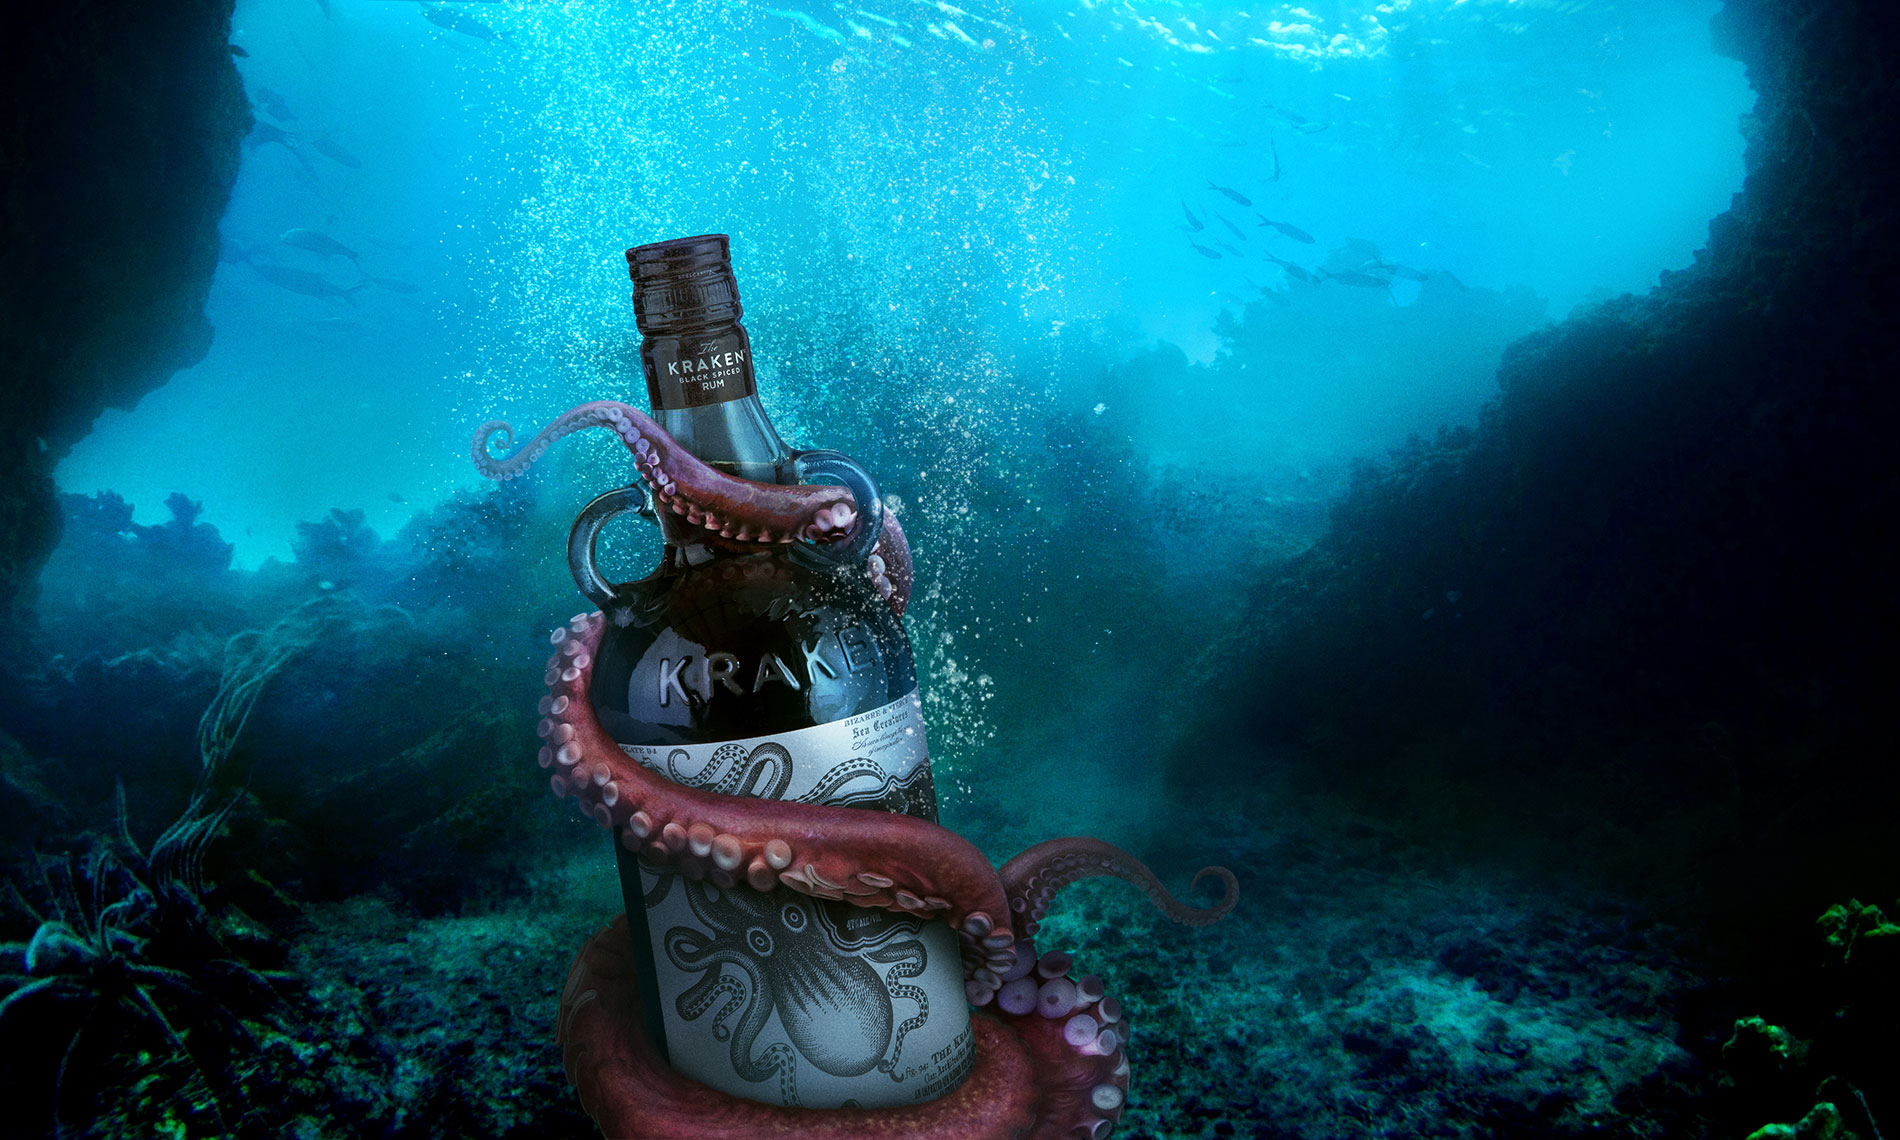 Photography, Photo Illustration, Digital Imaging and Retouching for Retouching on Kraken